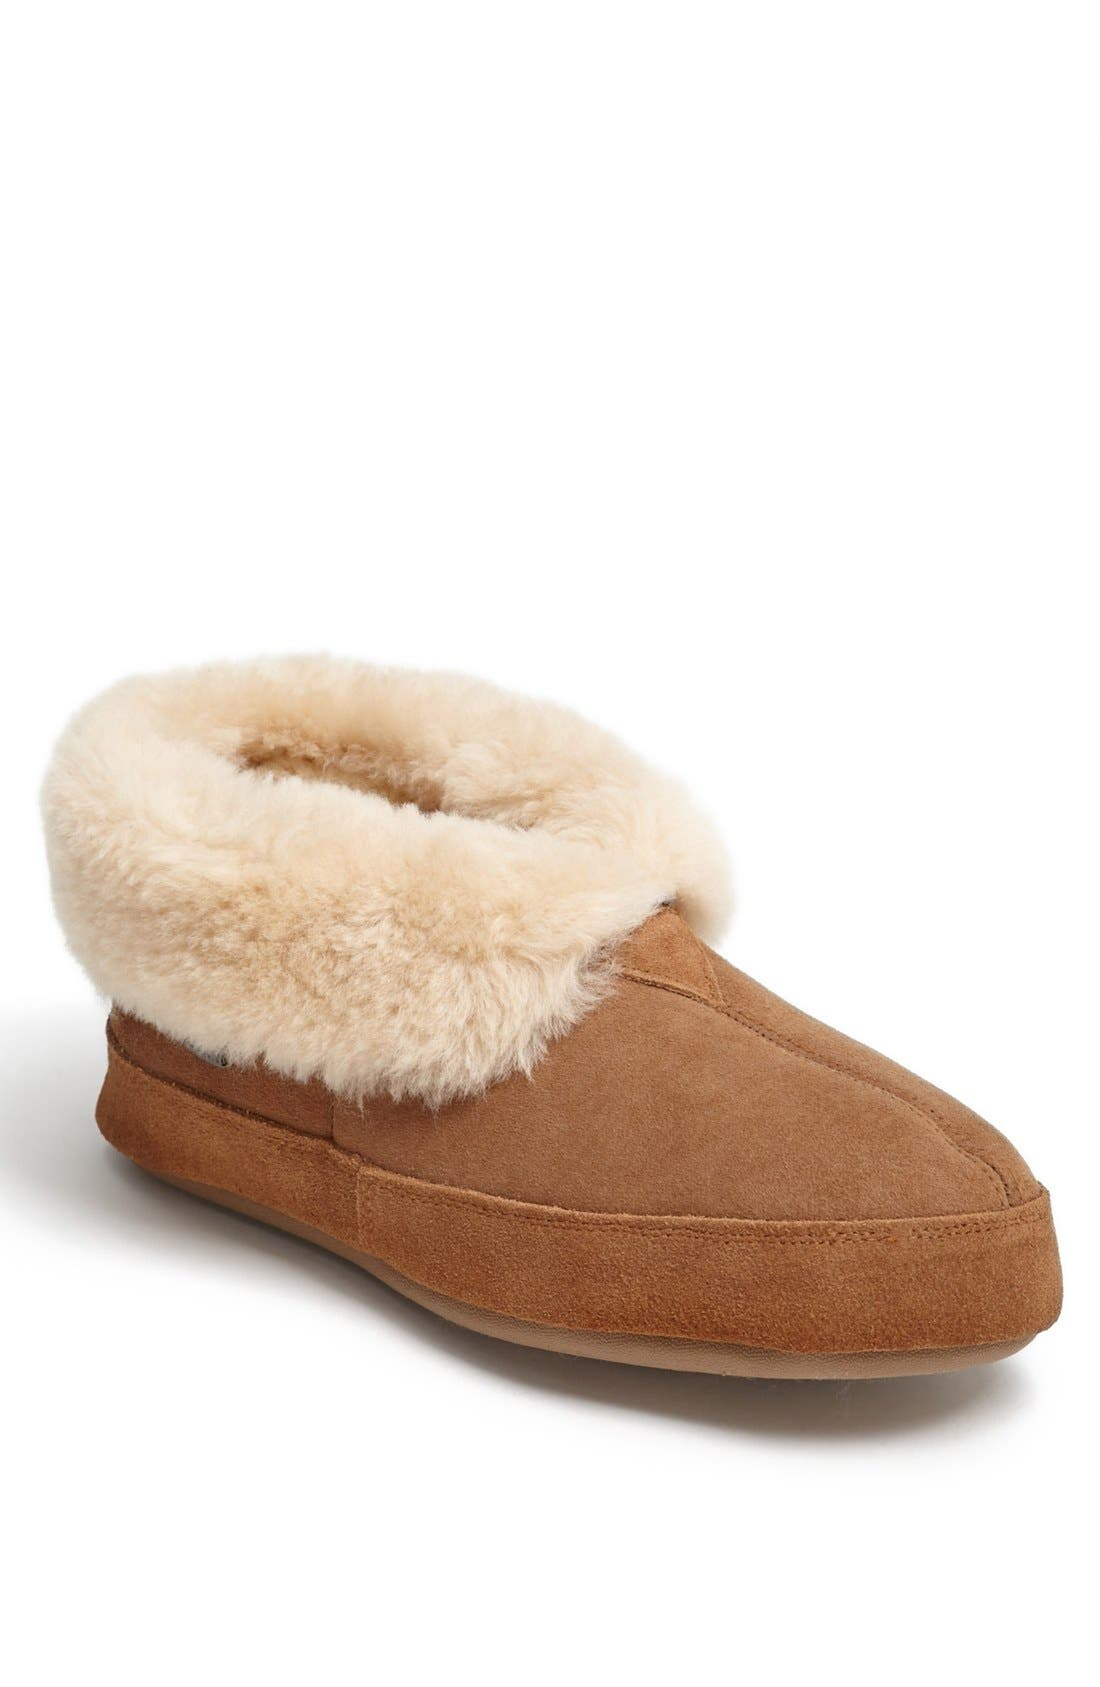 Genuine Sheepskin Slipper,                             Main thumbnail 1, color,                             WALNUT